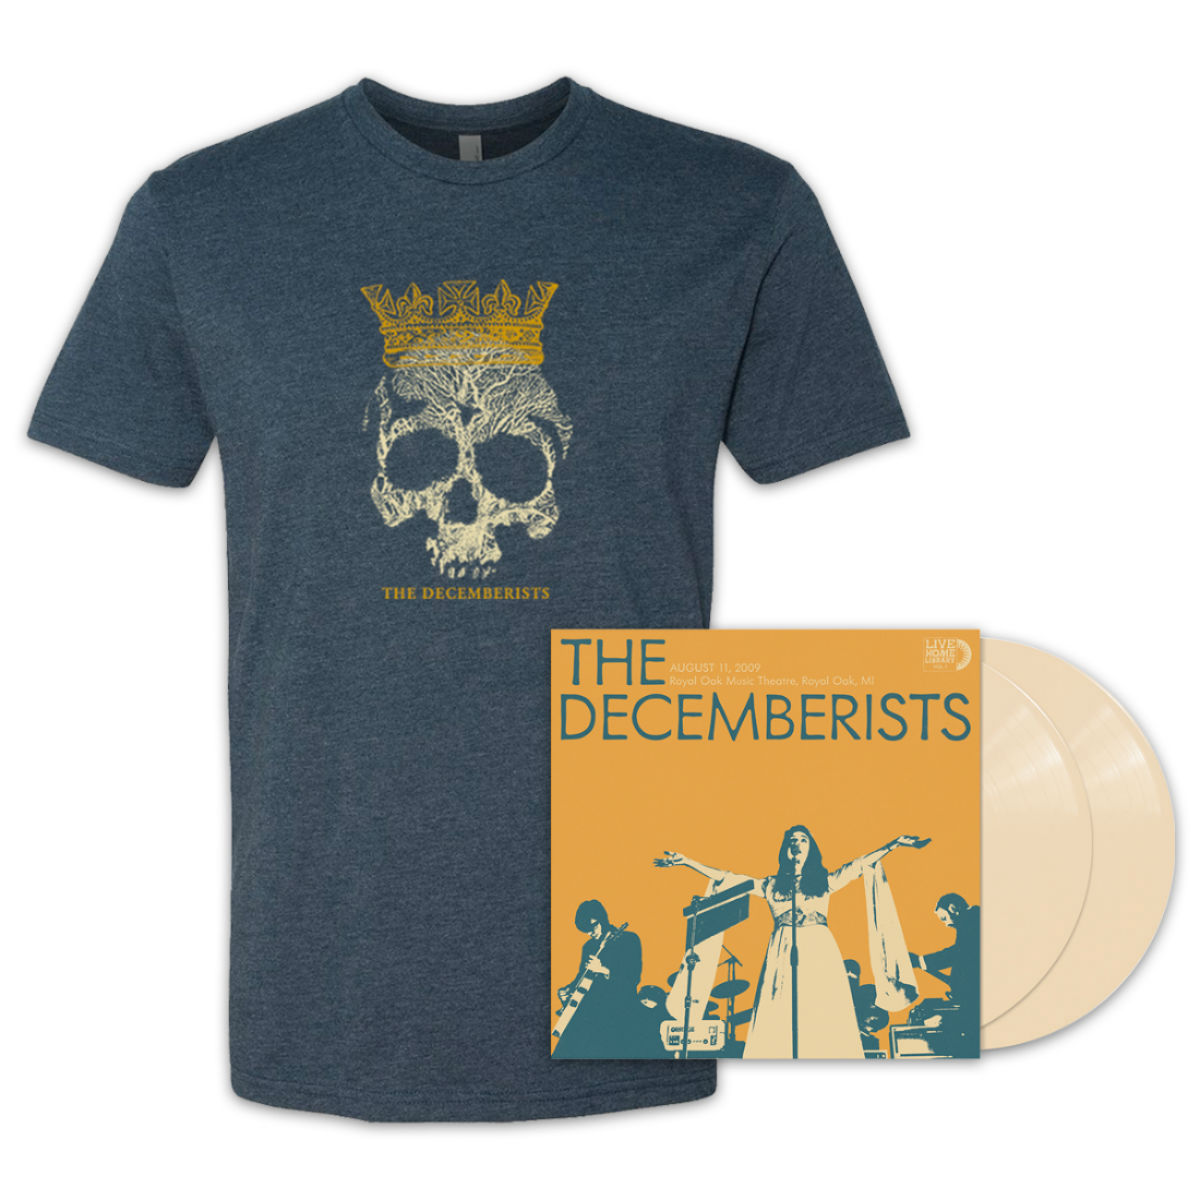 The Decemberists - Live Home Library vol. I - Bone Colored Vinyl/T-shirt Bundle (webstore exclusive)